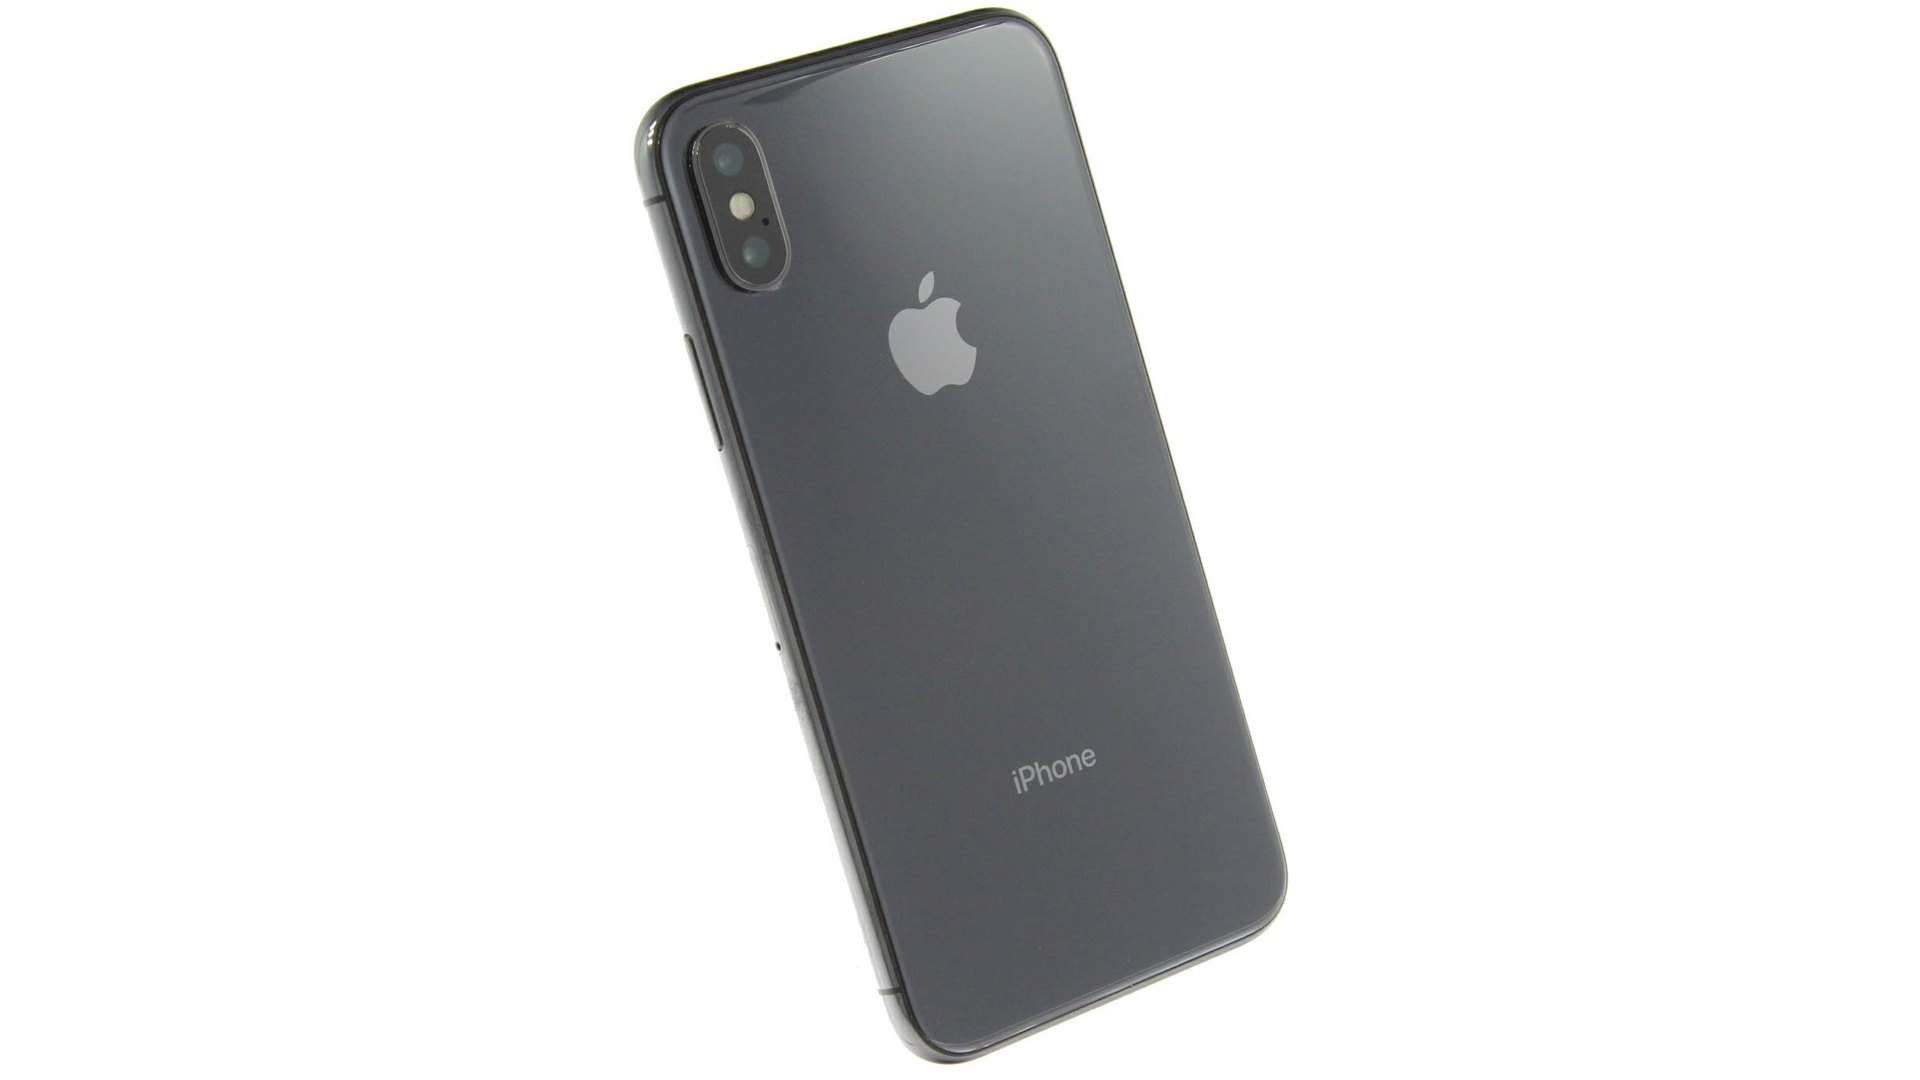 A photo of the iPhone X